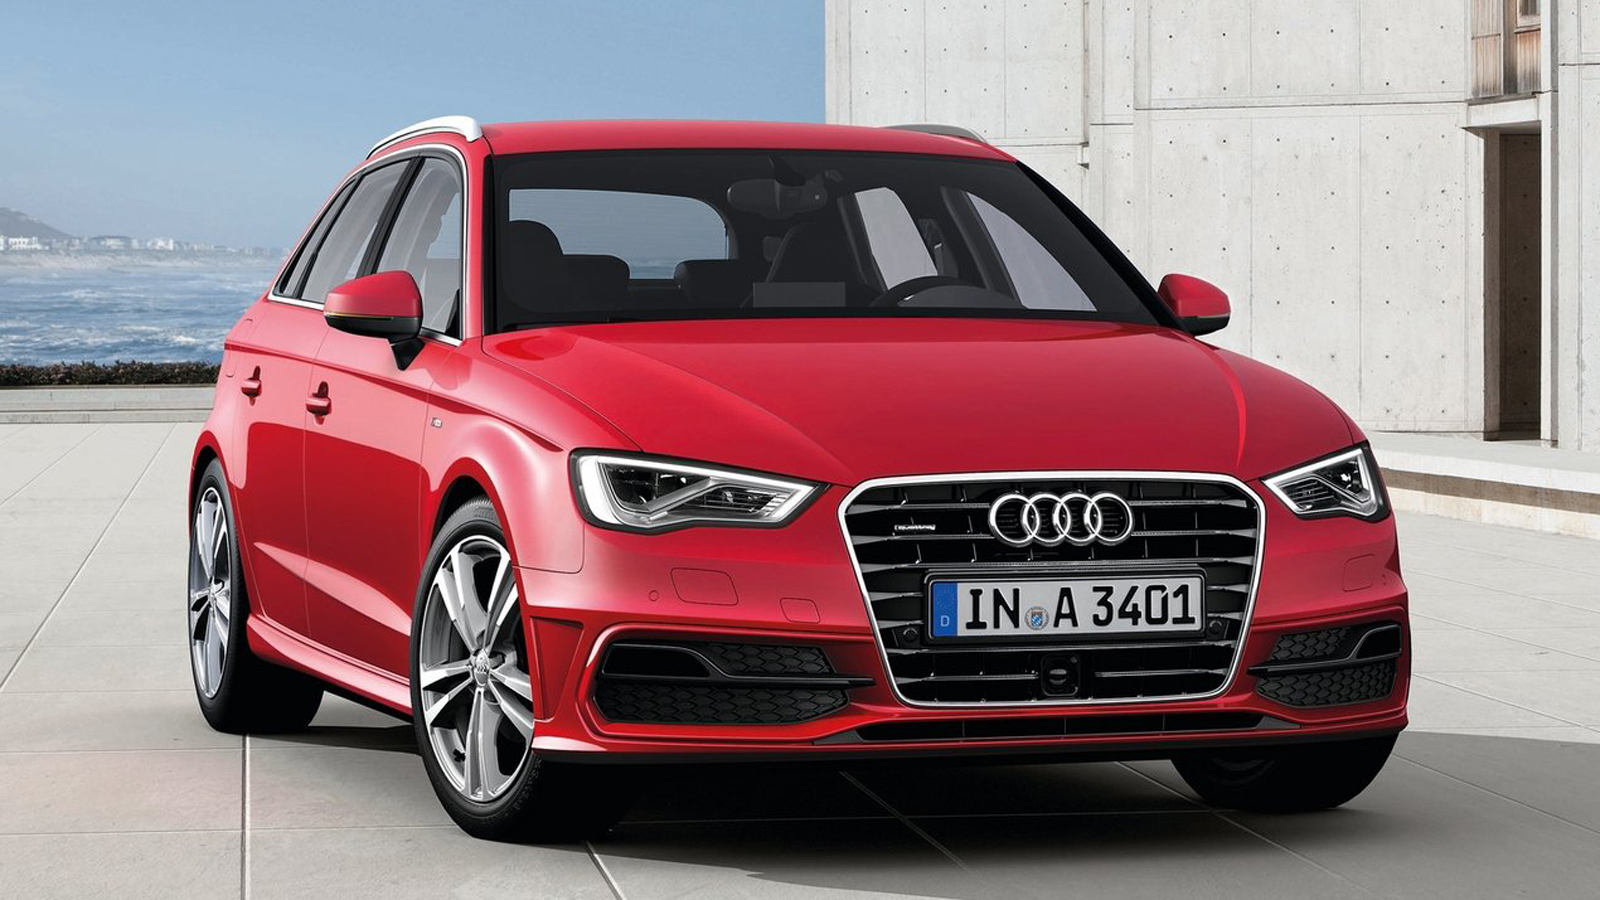 2014 audi a3 sportback s line car photos catalog 2019. Black Bedroom Furniture Sets. Home Design Ideas